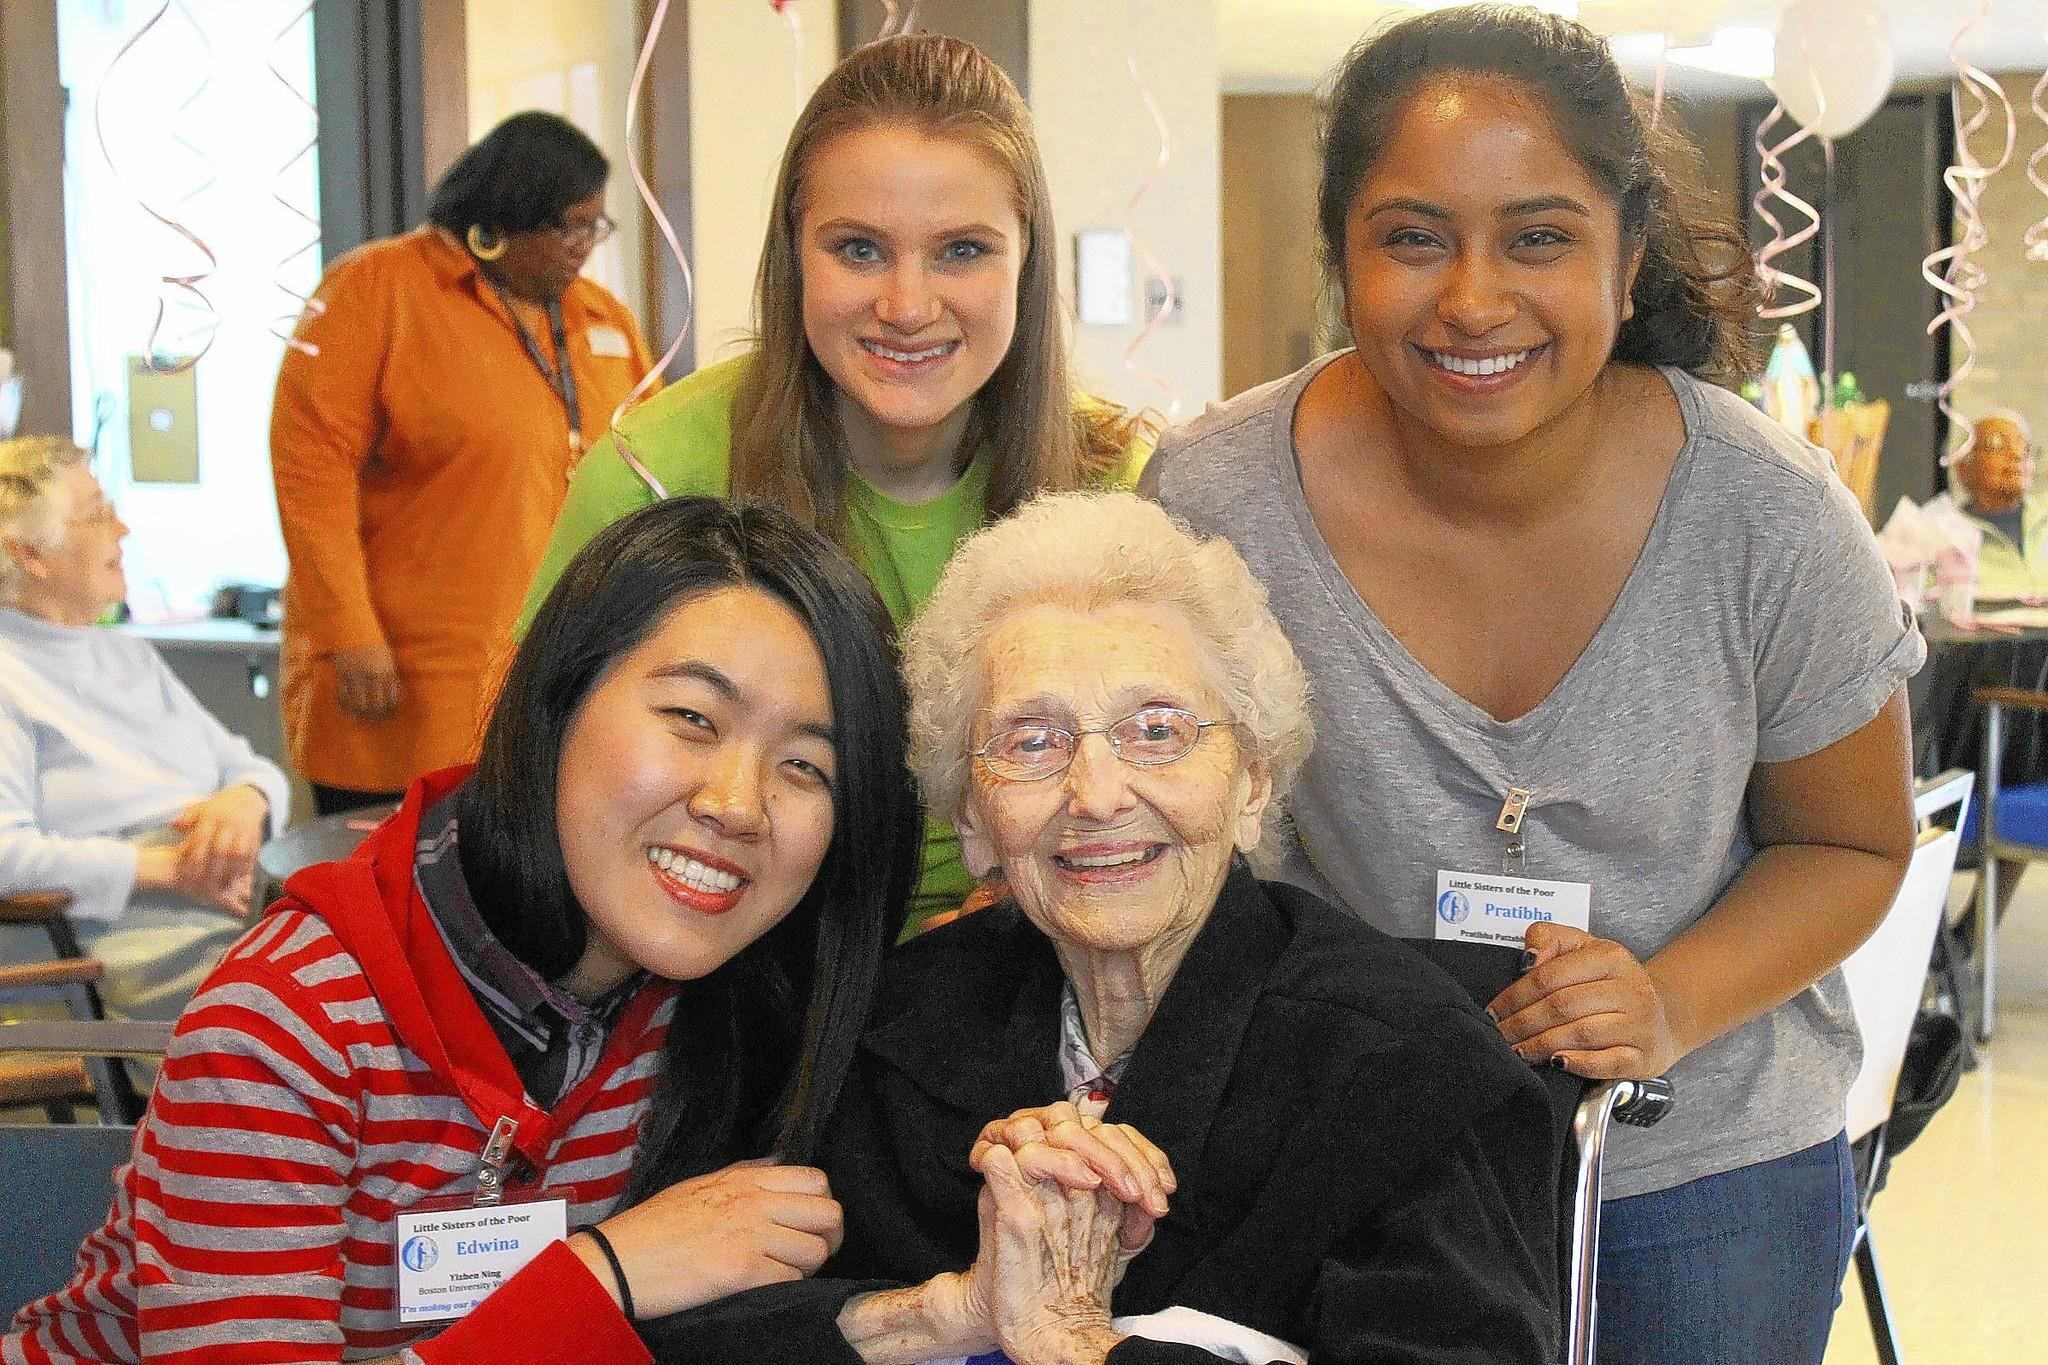 Boston University students take part in Alternative Spring Break in a visit to Catonsville, where they spent time with residents of Little Sisters of the Poor. Photo courtesy of Little Sisters of the Poor.